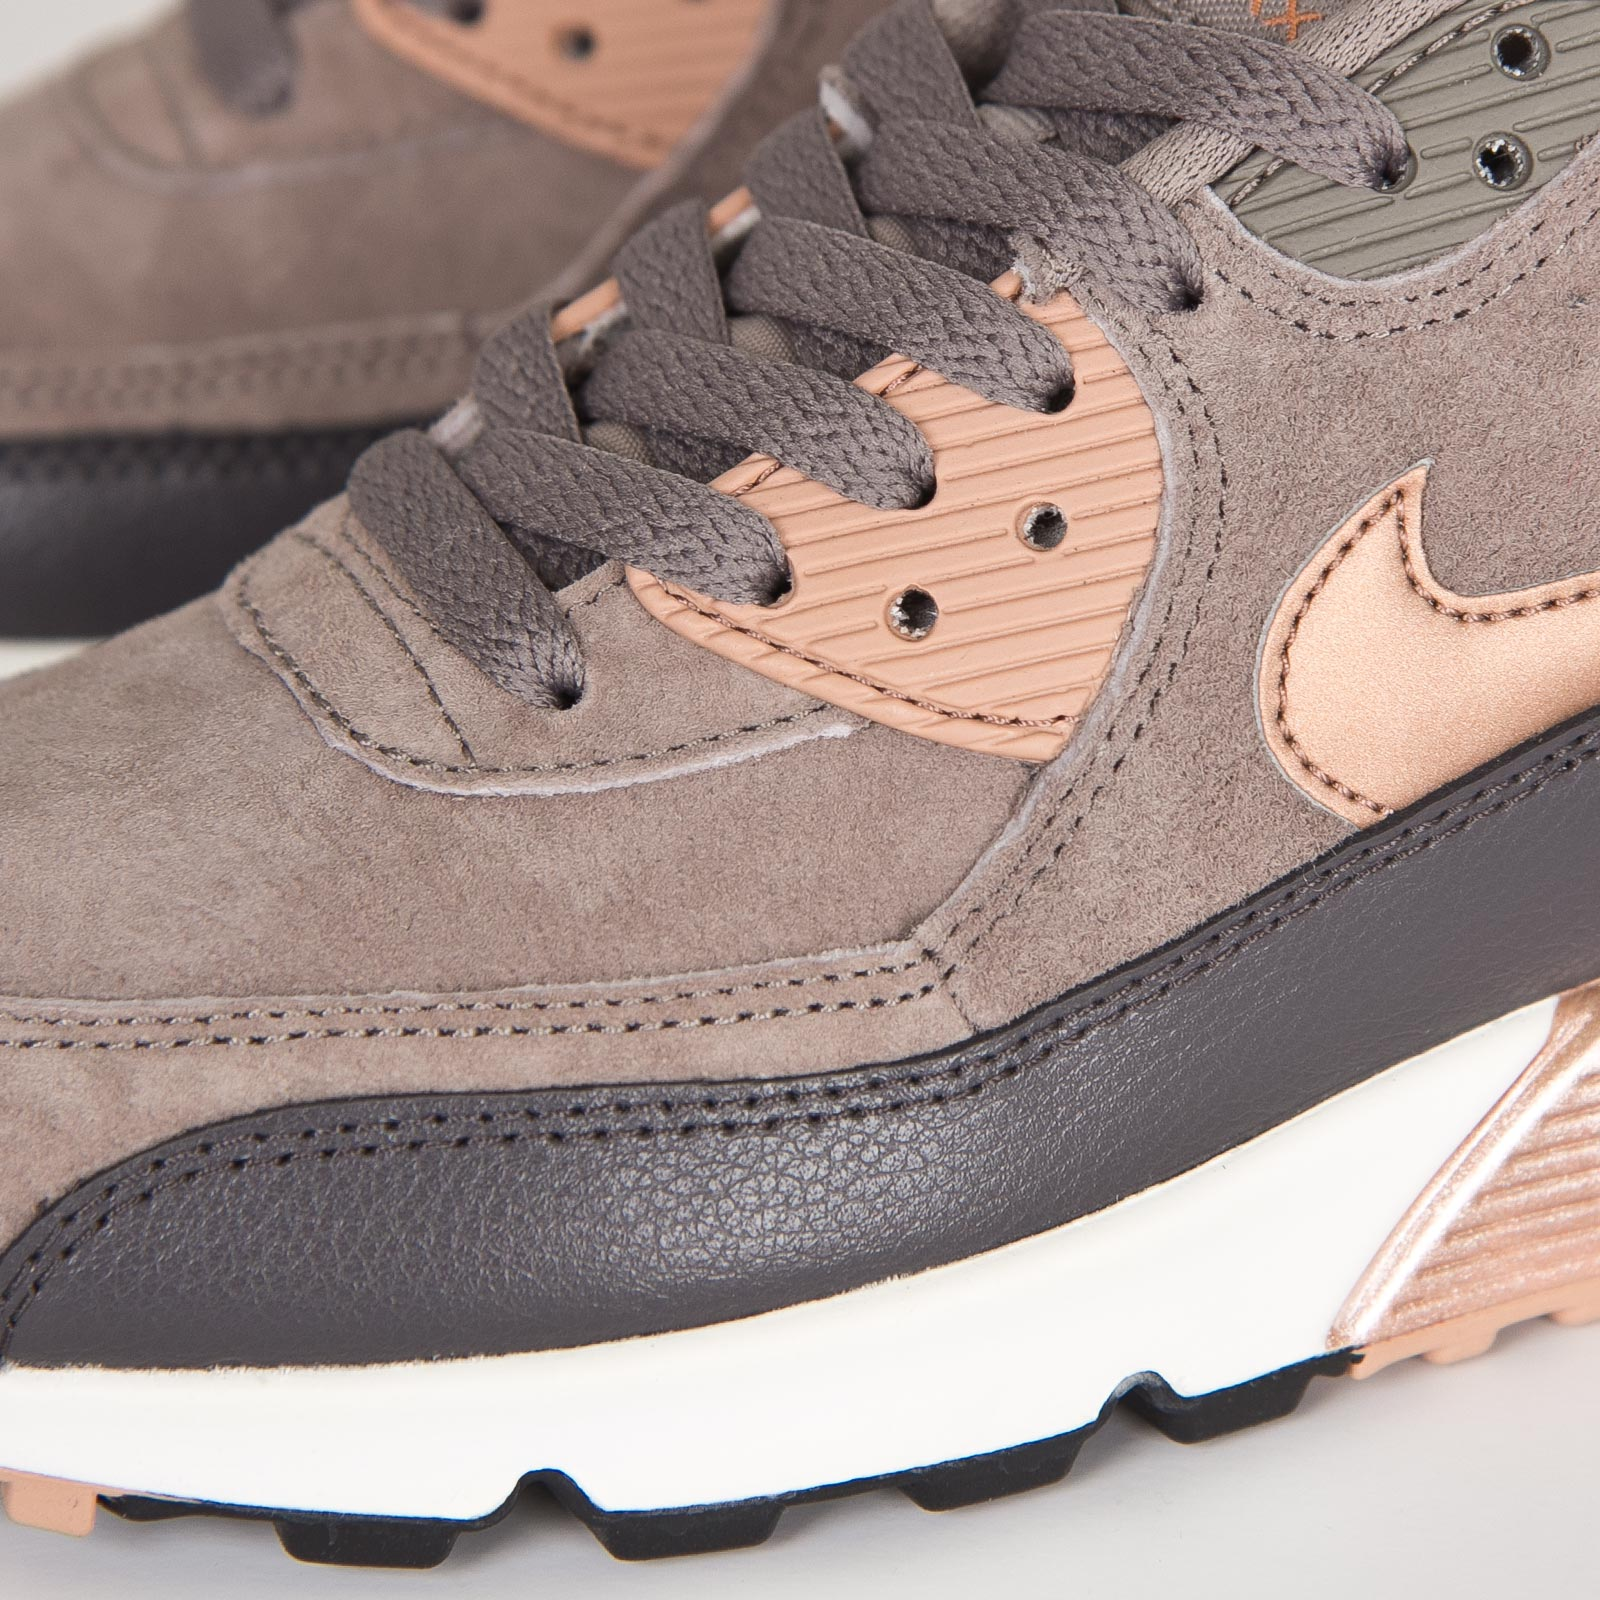 finest selection 95d6d 8d091 ... Nike Wmns Air Max 90 Leather